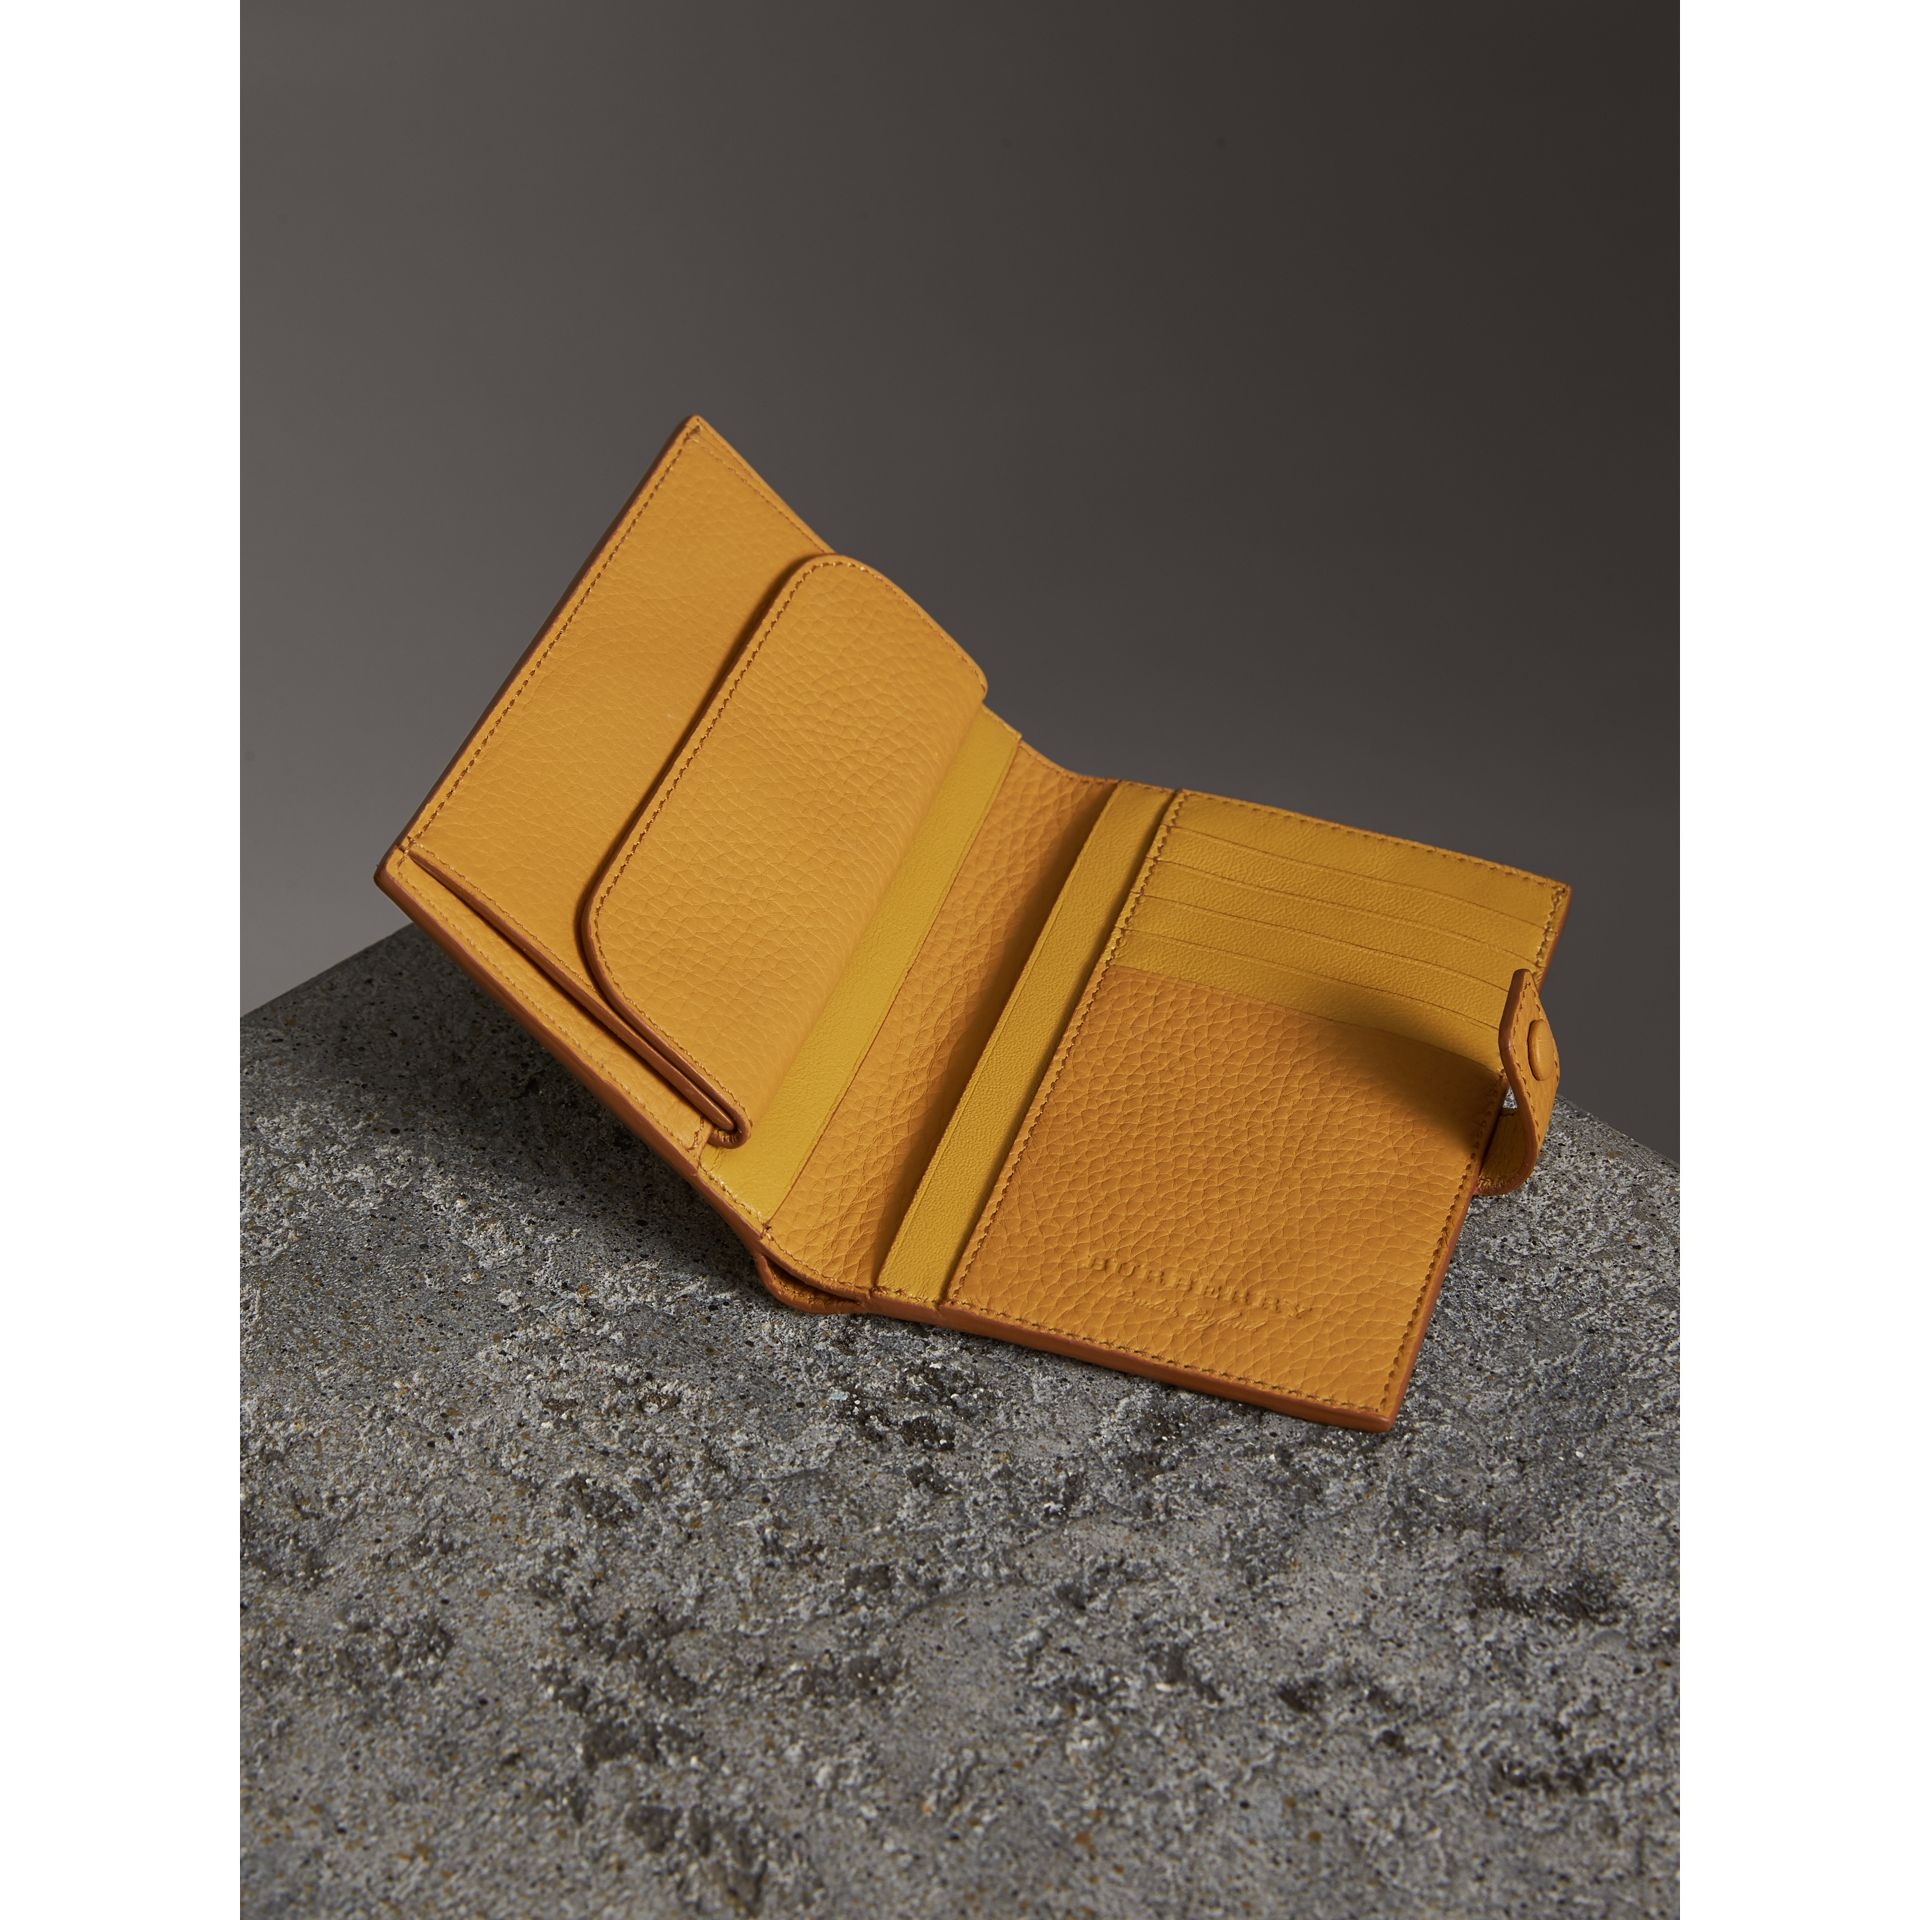 Embossed Grainy Leather Folding Wallet in Ochre Yellow - Women | Burberry - gallery image 3